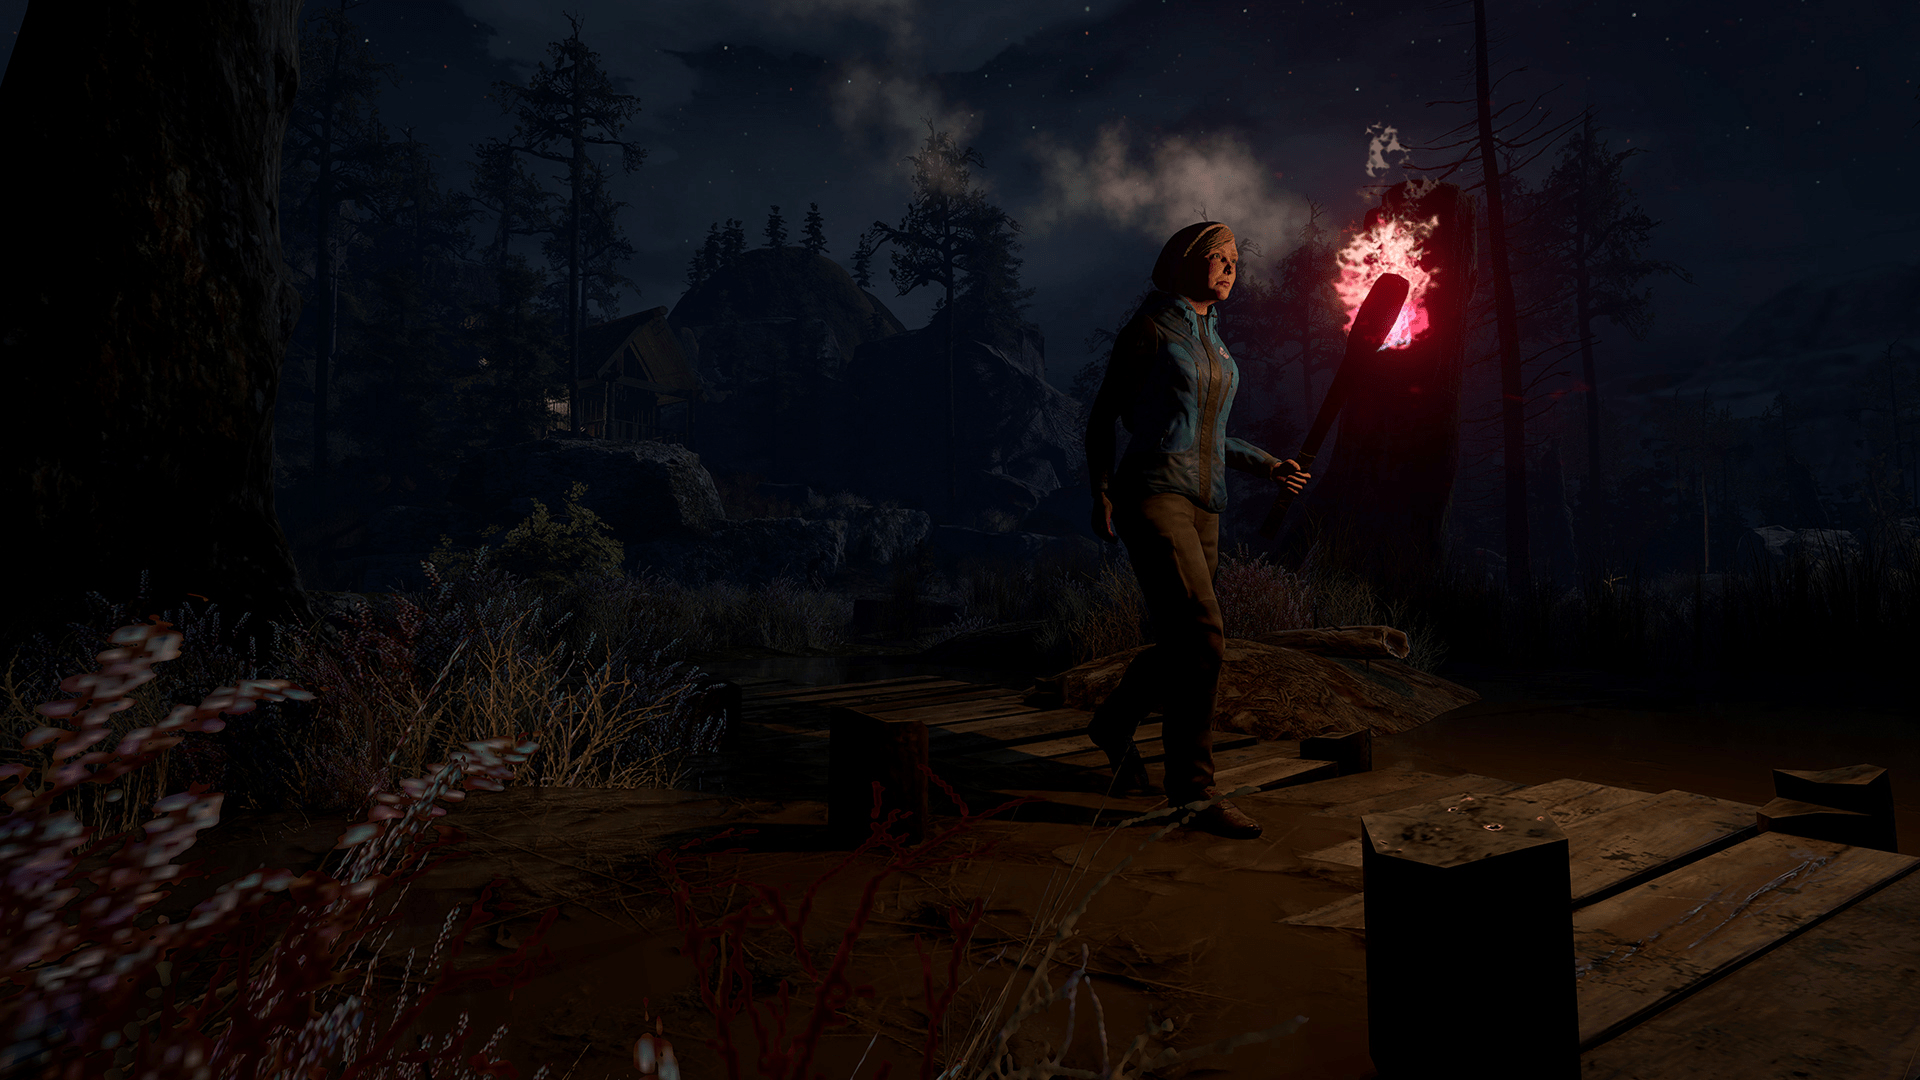 Horror Games For Xbox 1 : Through the woods norse horror game heading to xbox one and